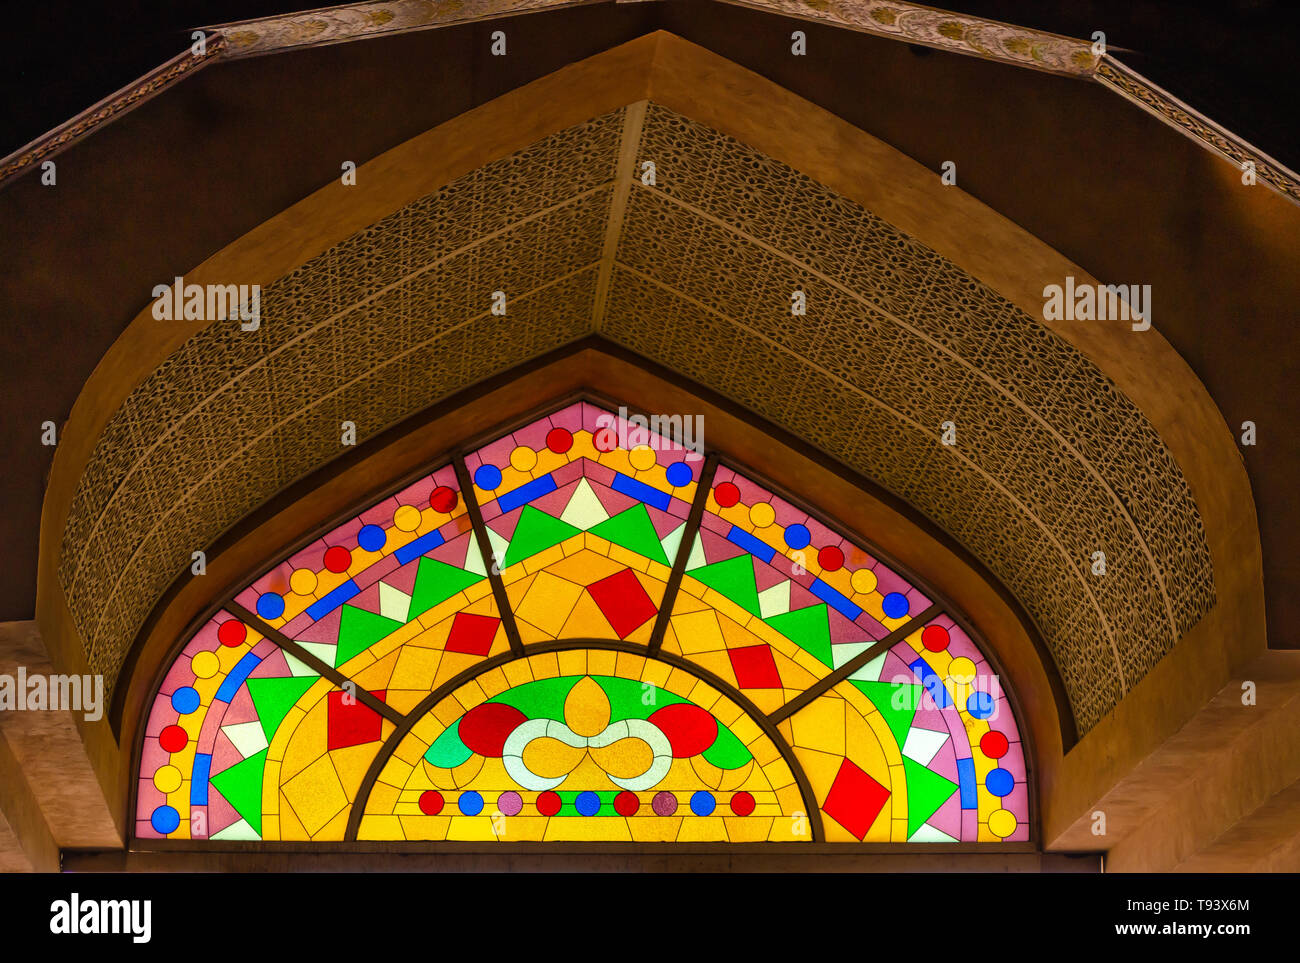 Traditional Middle Eastern style stained glass art on a huge arch. From Muscat, Oman. - Stock Image